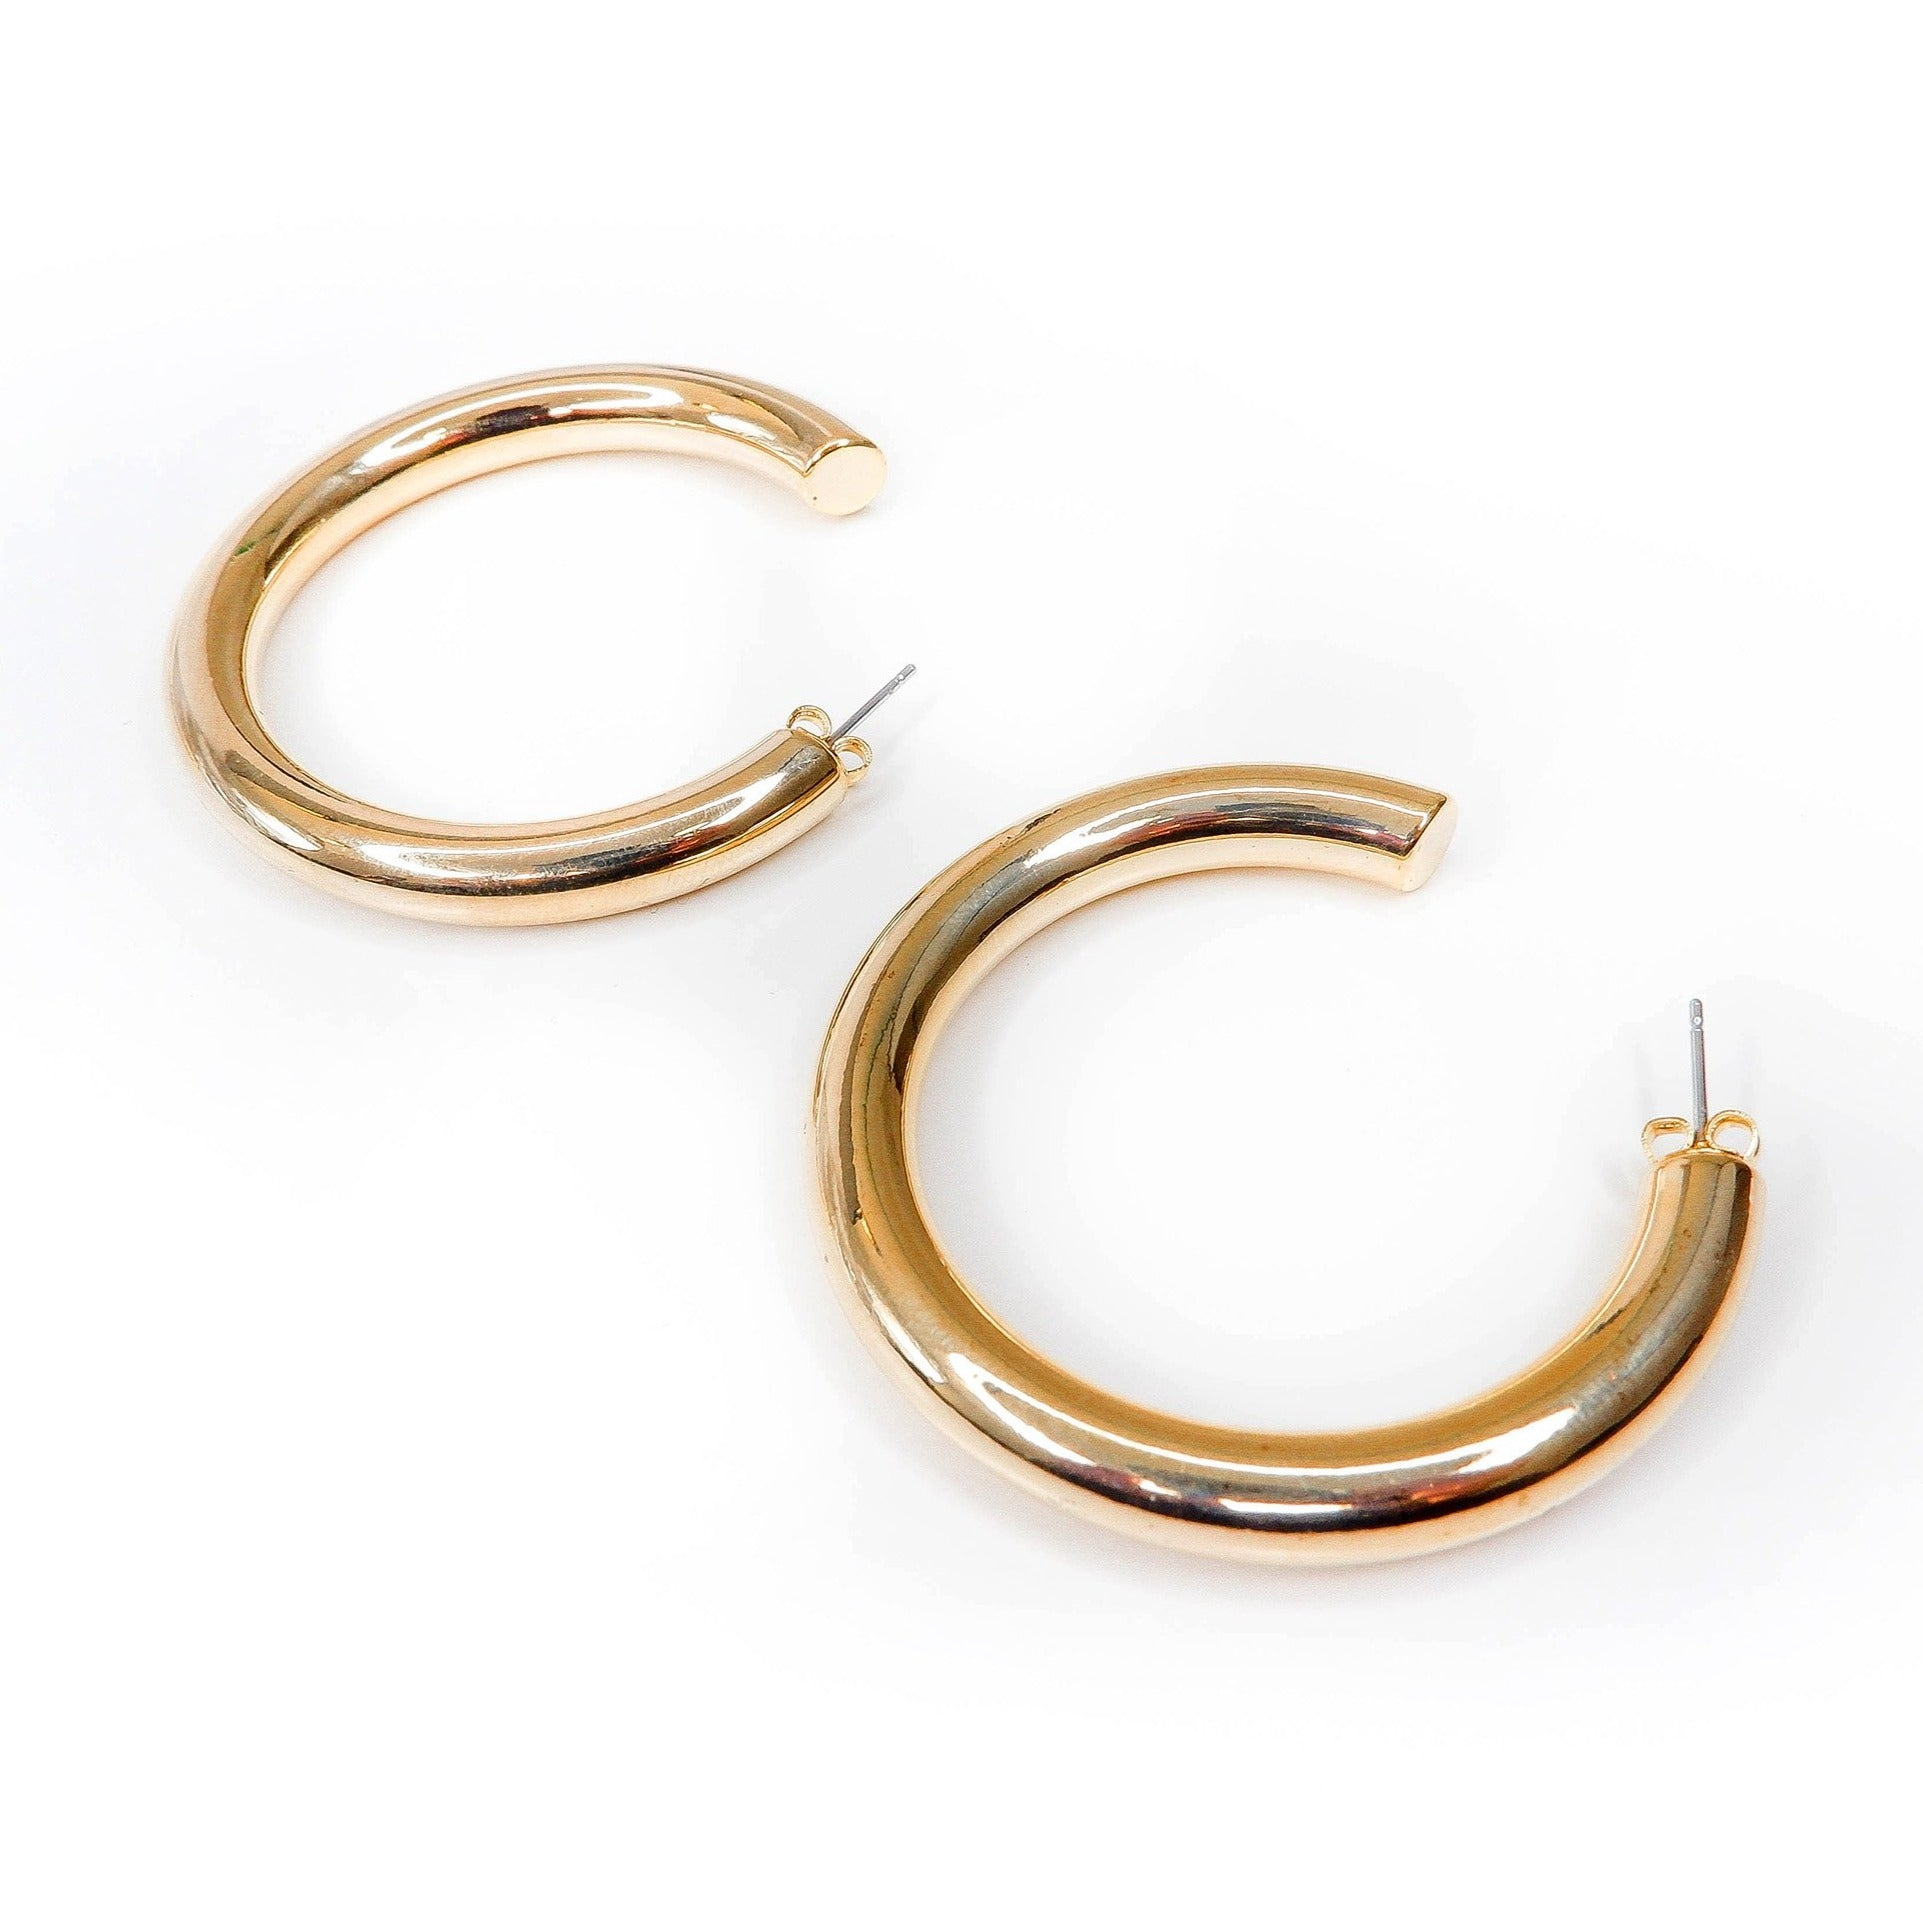 Thick 14k gold plated hoops